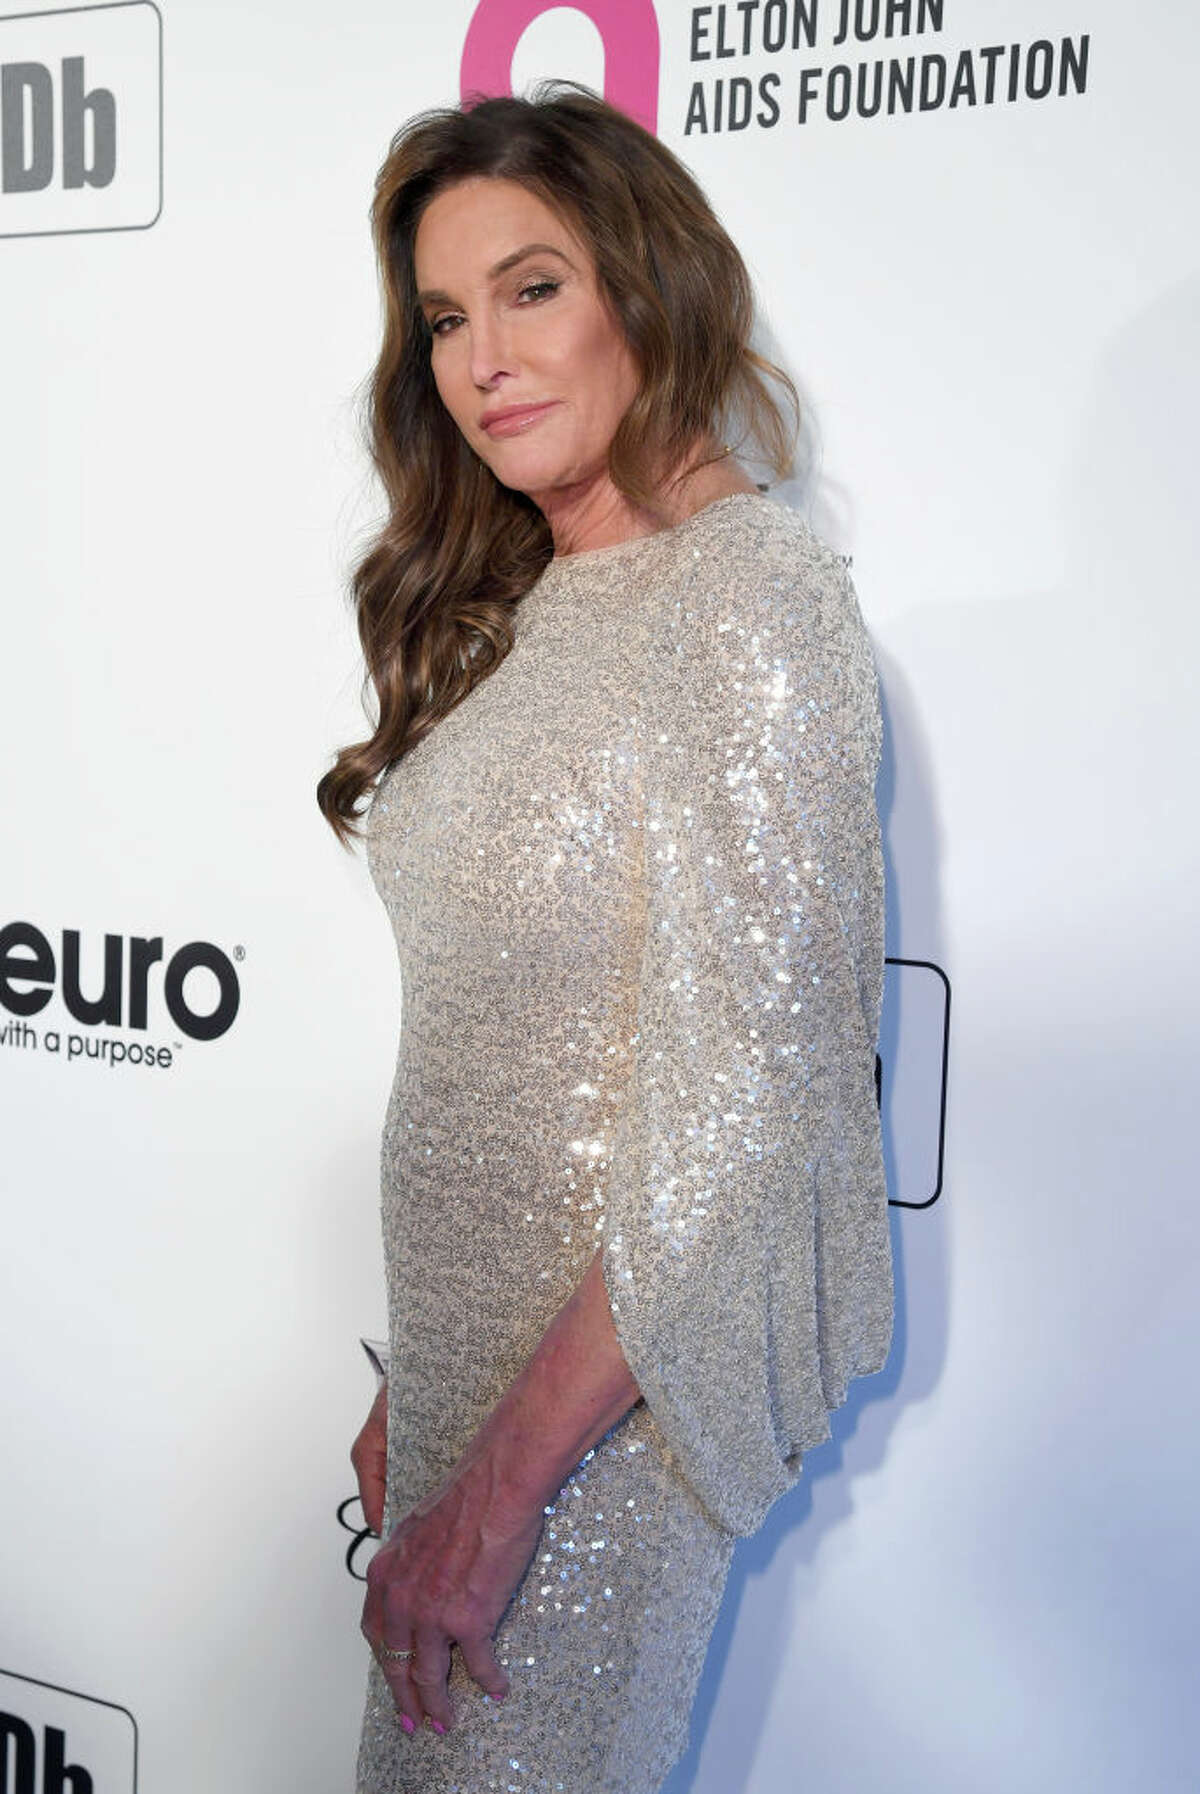 """Connecticut connection: Newtown High alumnus Where you know her from: """"Keeping Up With The Kardashians,"""" """"I Am Cait,"""" Olympic Gold Medalist Price for one of the most expensive Cameos: $2,500 *Proceeds from Caitlyn Jenner's cameo will benefit the Caitlyn Jenner Foundation"""